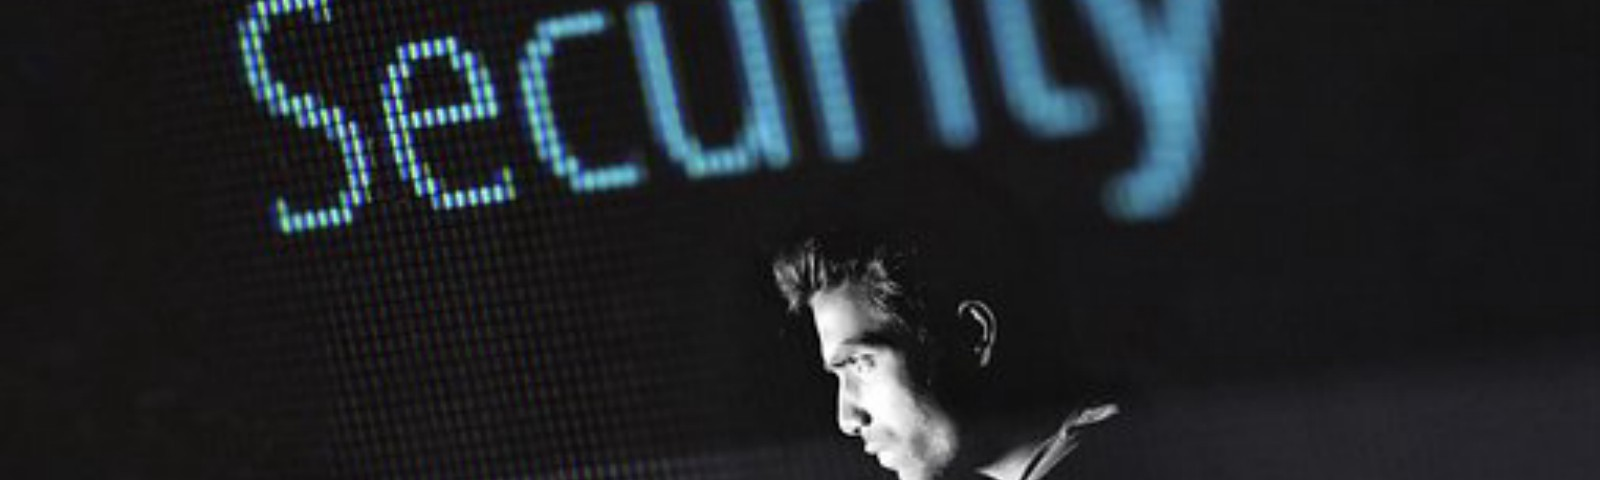 5 Best Programming Languages to Learn for Cyber Security - By